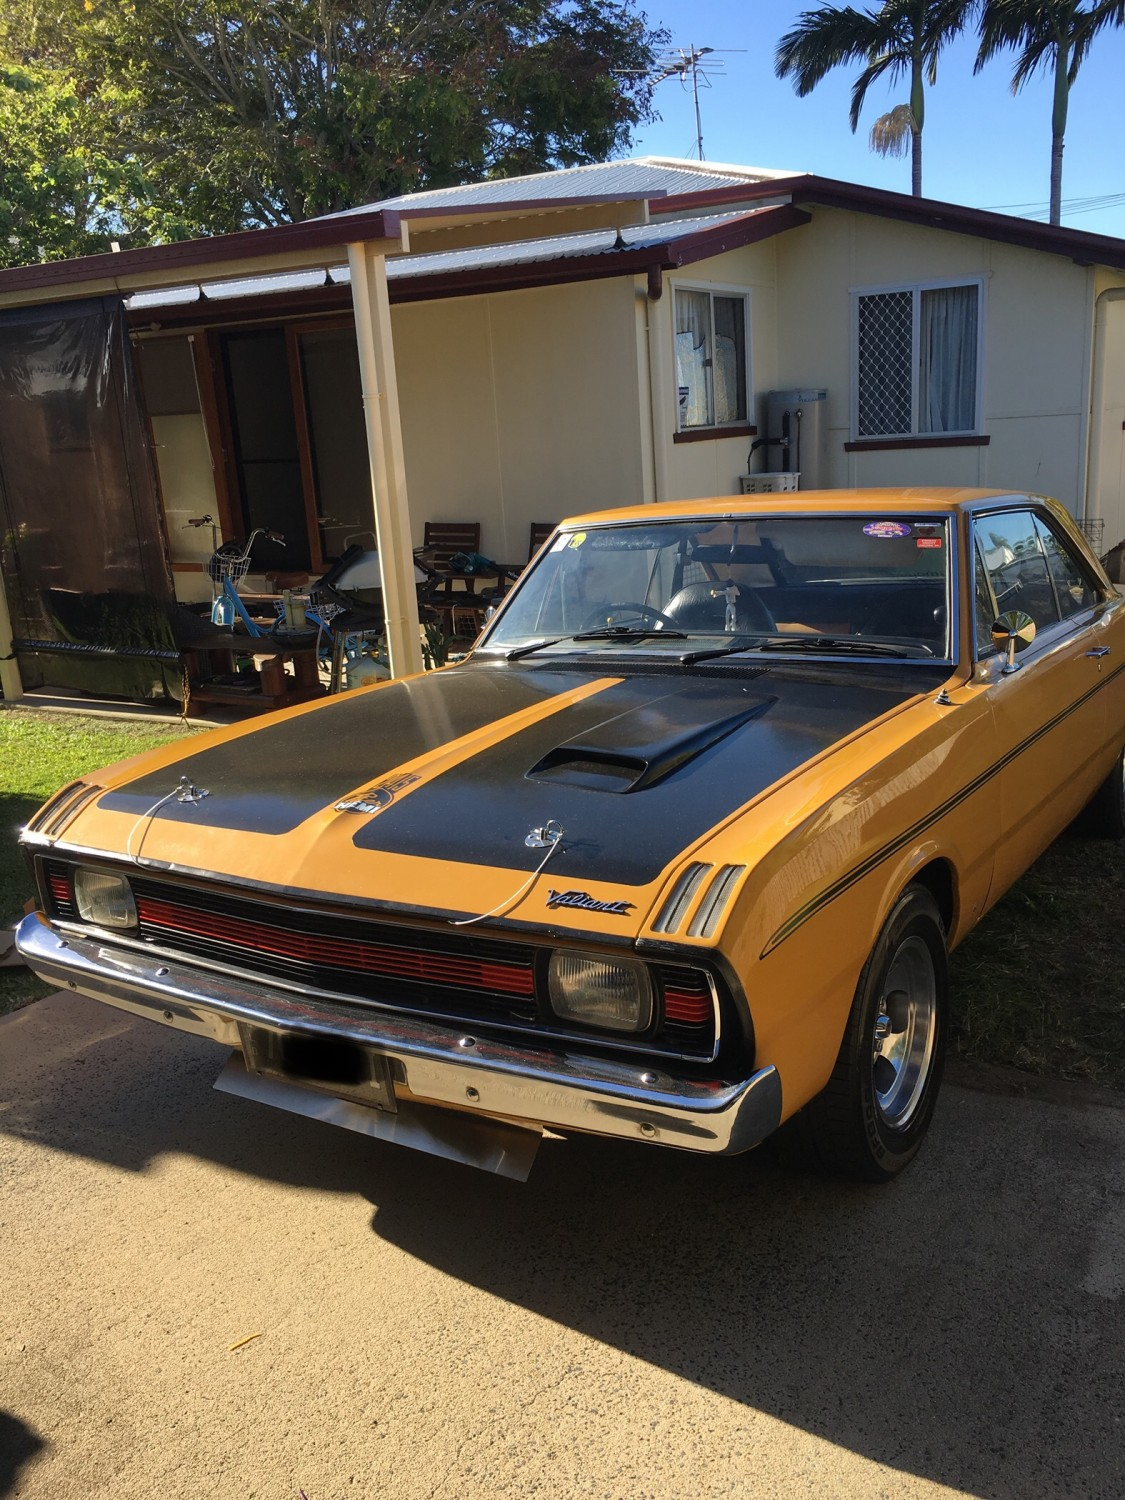 Valiant Pacer Vg,HDPacer